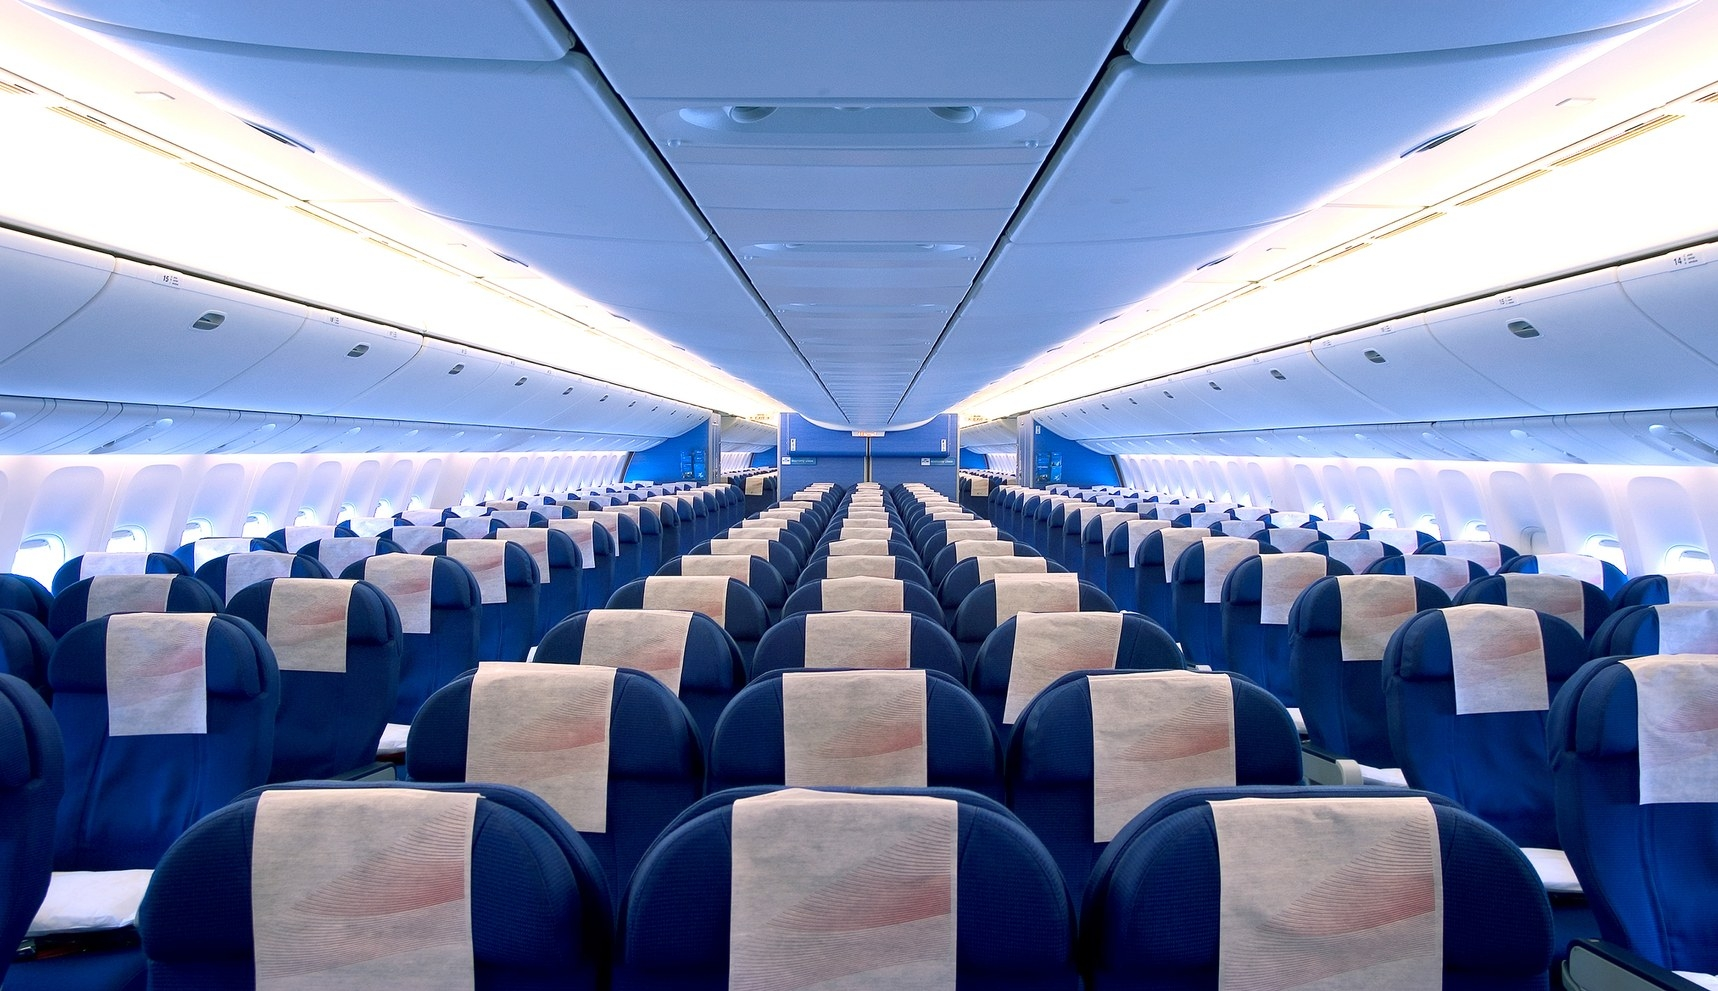 To Stay Healthy On Your Next Flight, Avoid Aisles and Stay Put